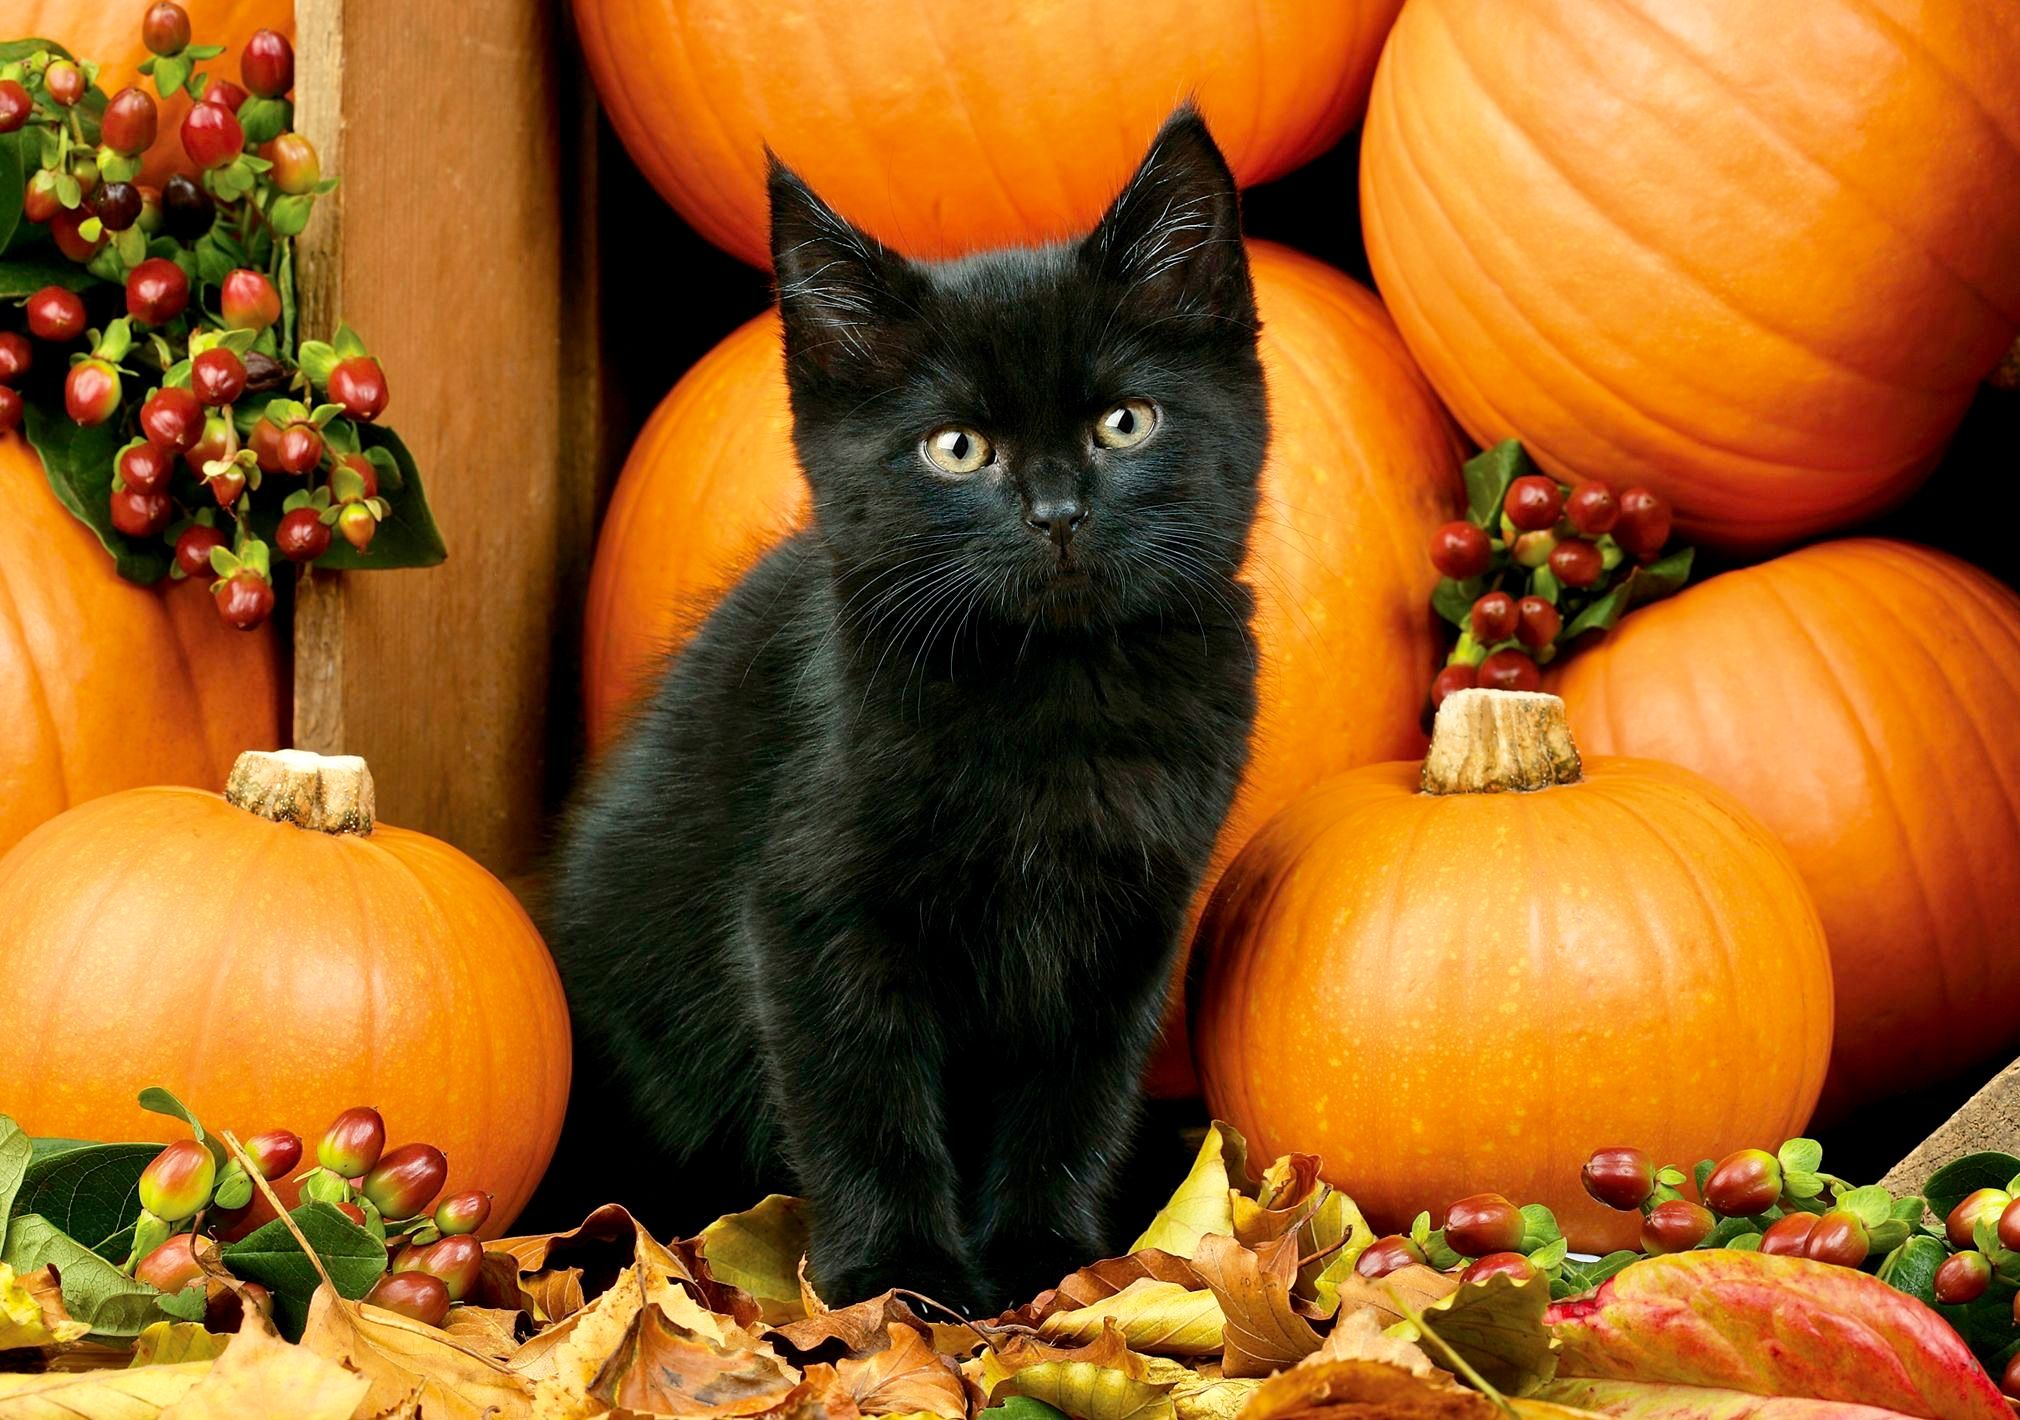 Pin By Kathy Anderson On Halloween Black Cat Halloween Cat Wallpaper Halloween Animals